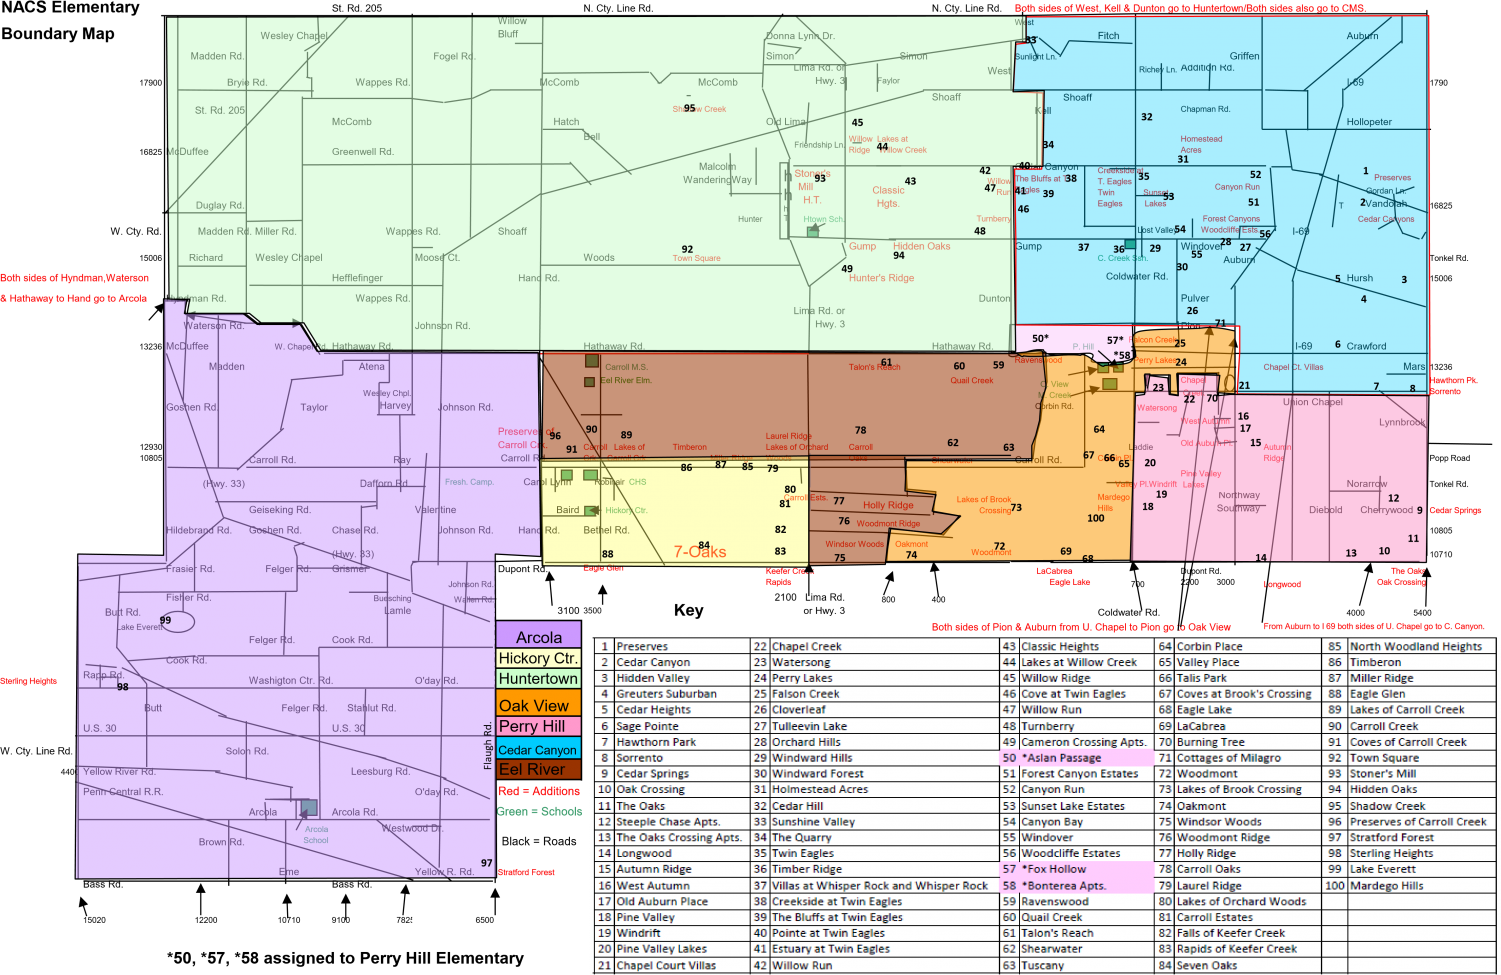 The current elementary school boundary map for the district. The graph in the bottom right corner shows the included neighborhoods in each boundary.